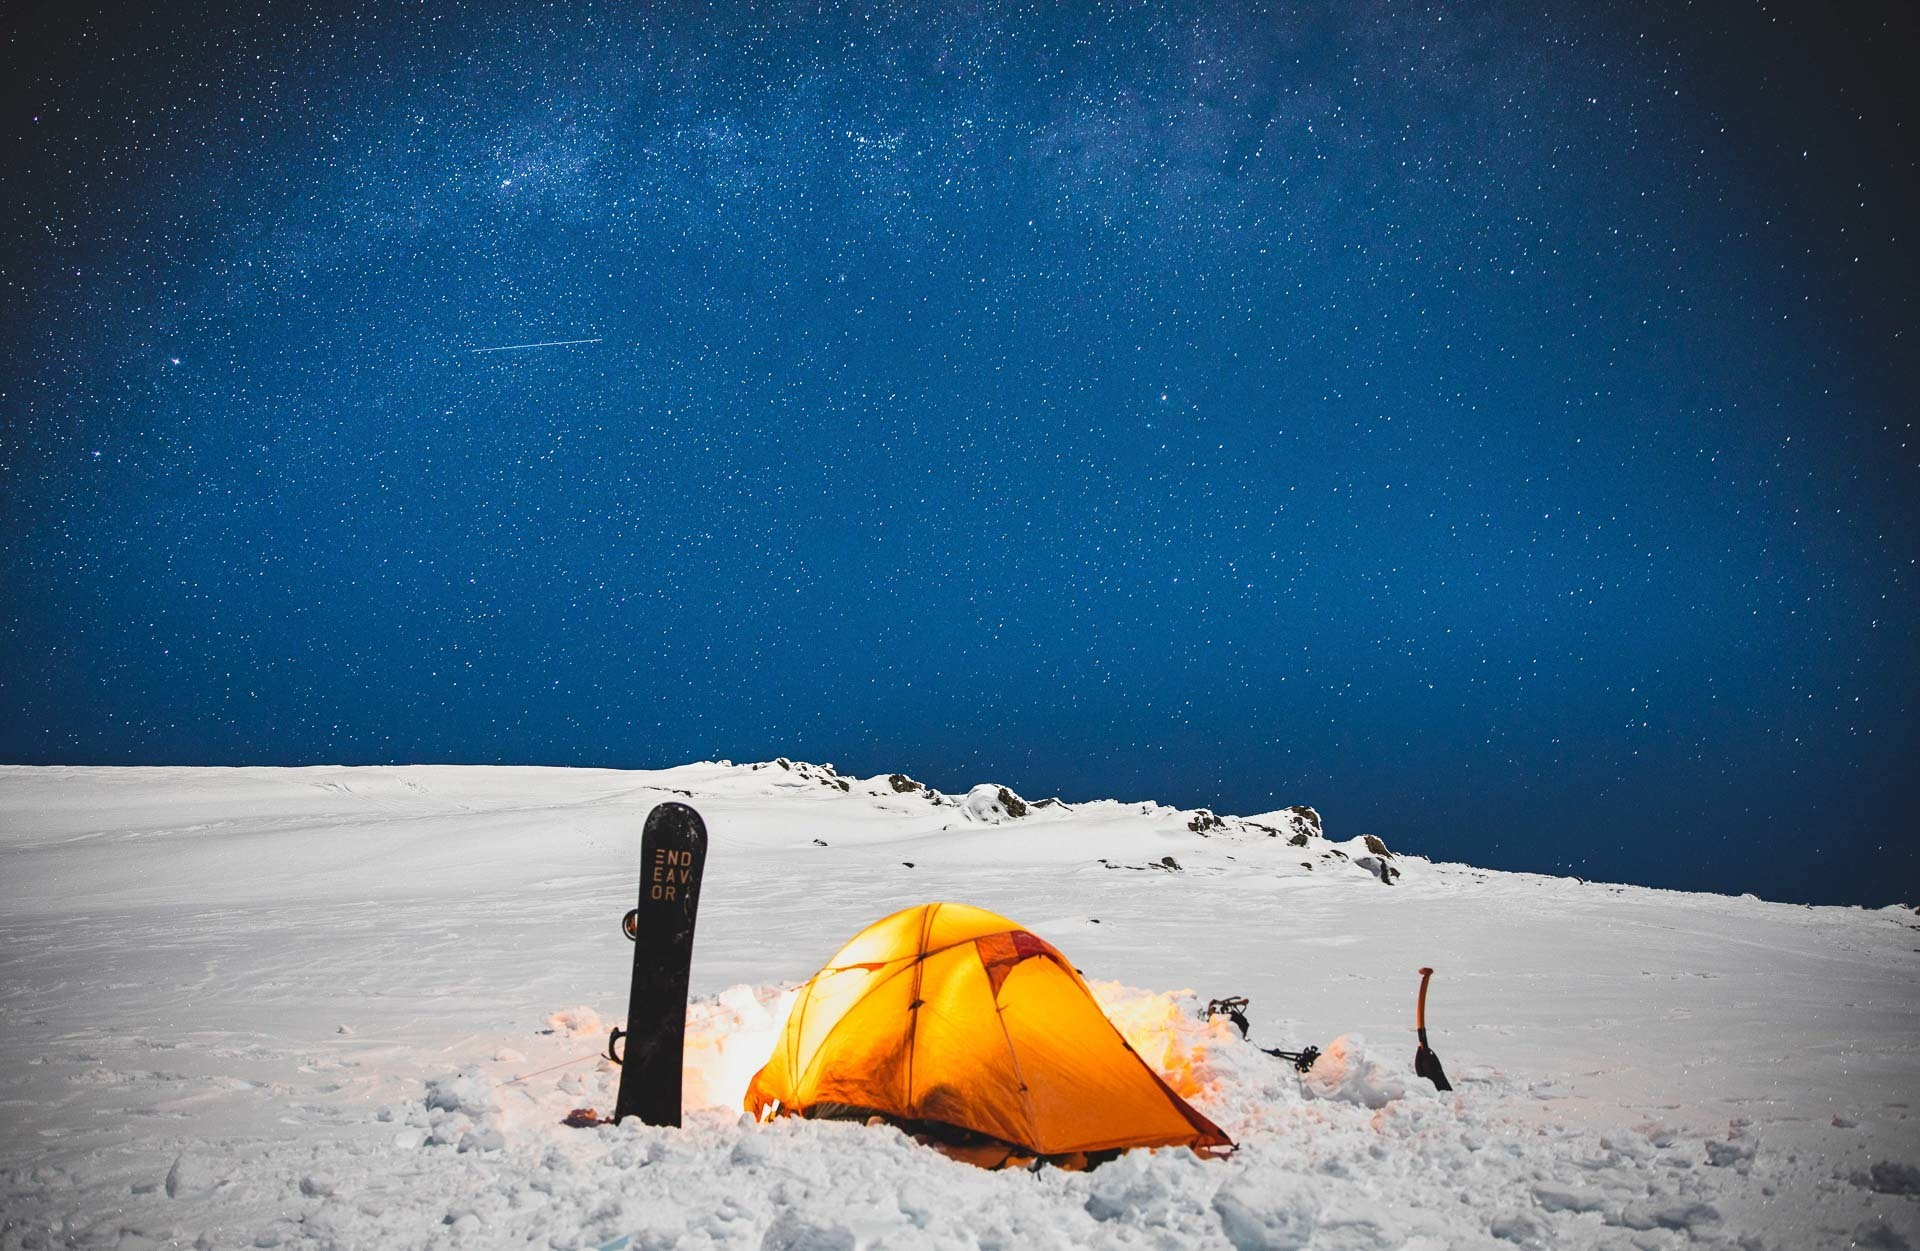 Sea to Summit in Australia – All In A Day's Work, guy williment, astrophotography, backcountry, snow camping, snowboard, nsw